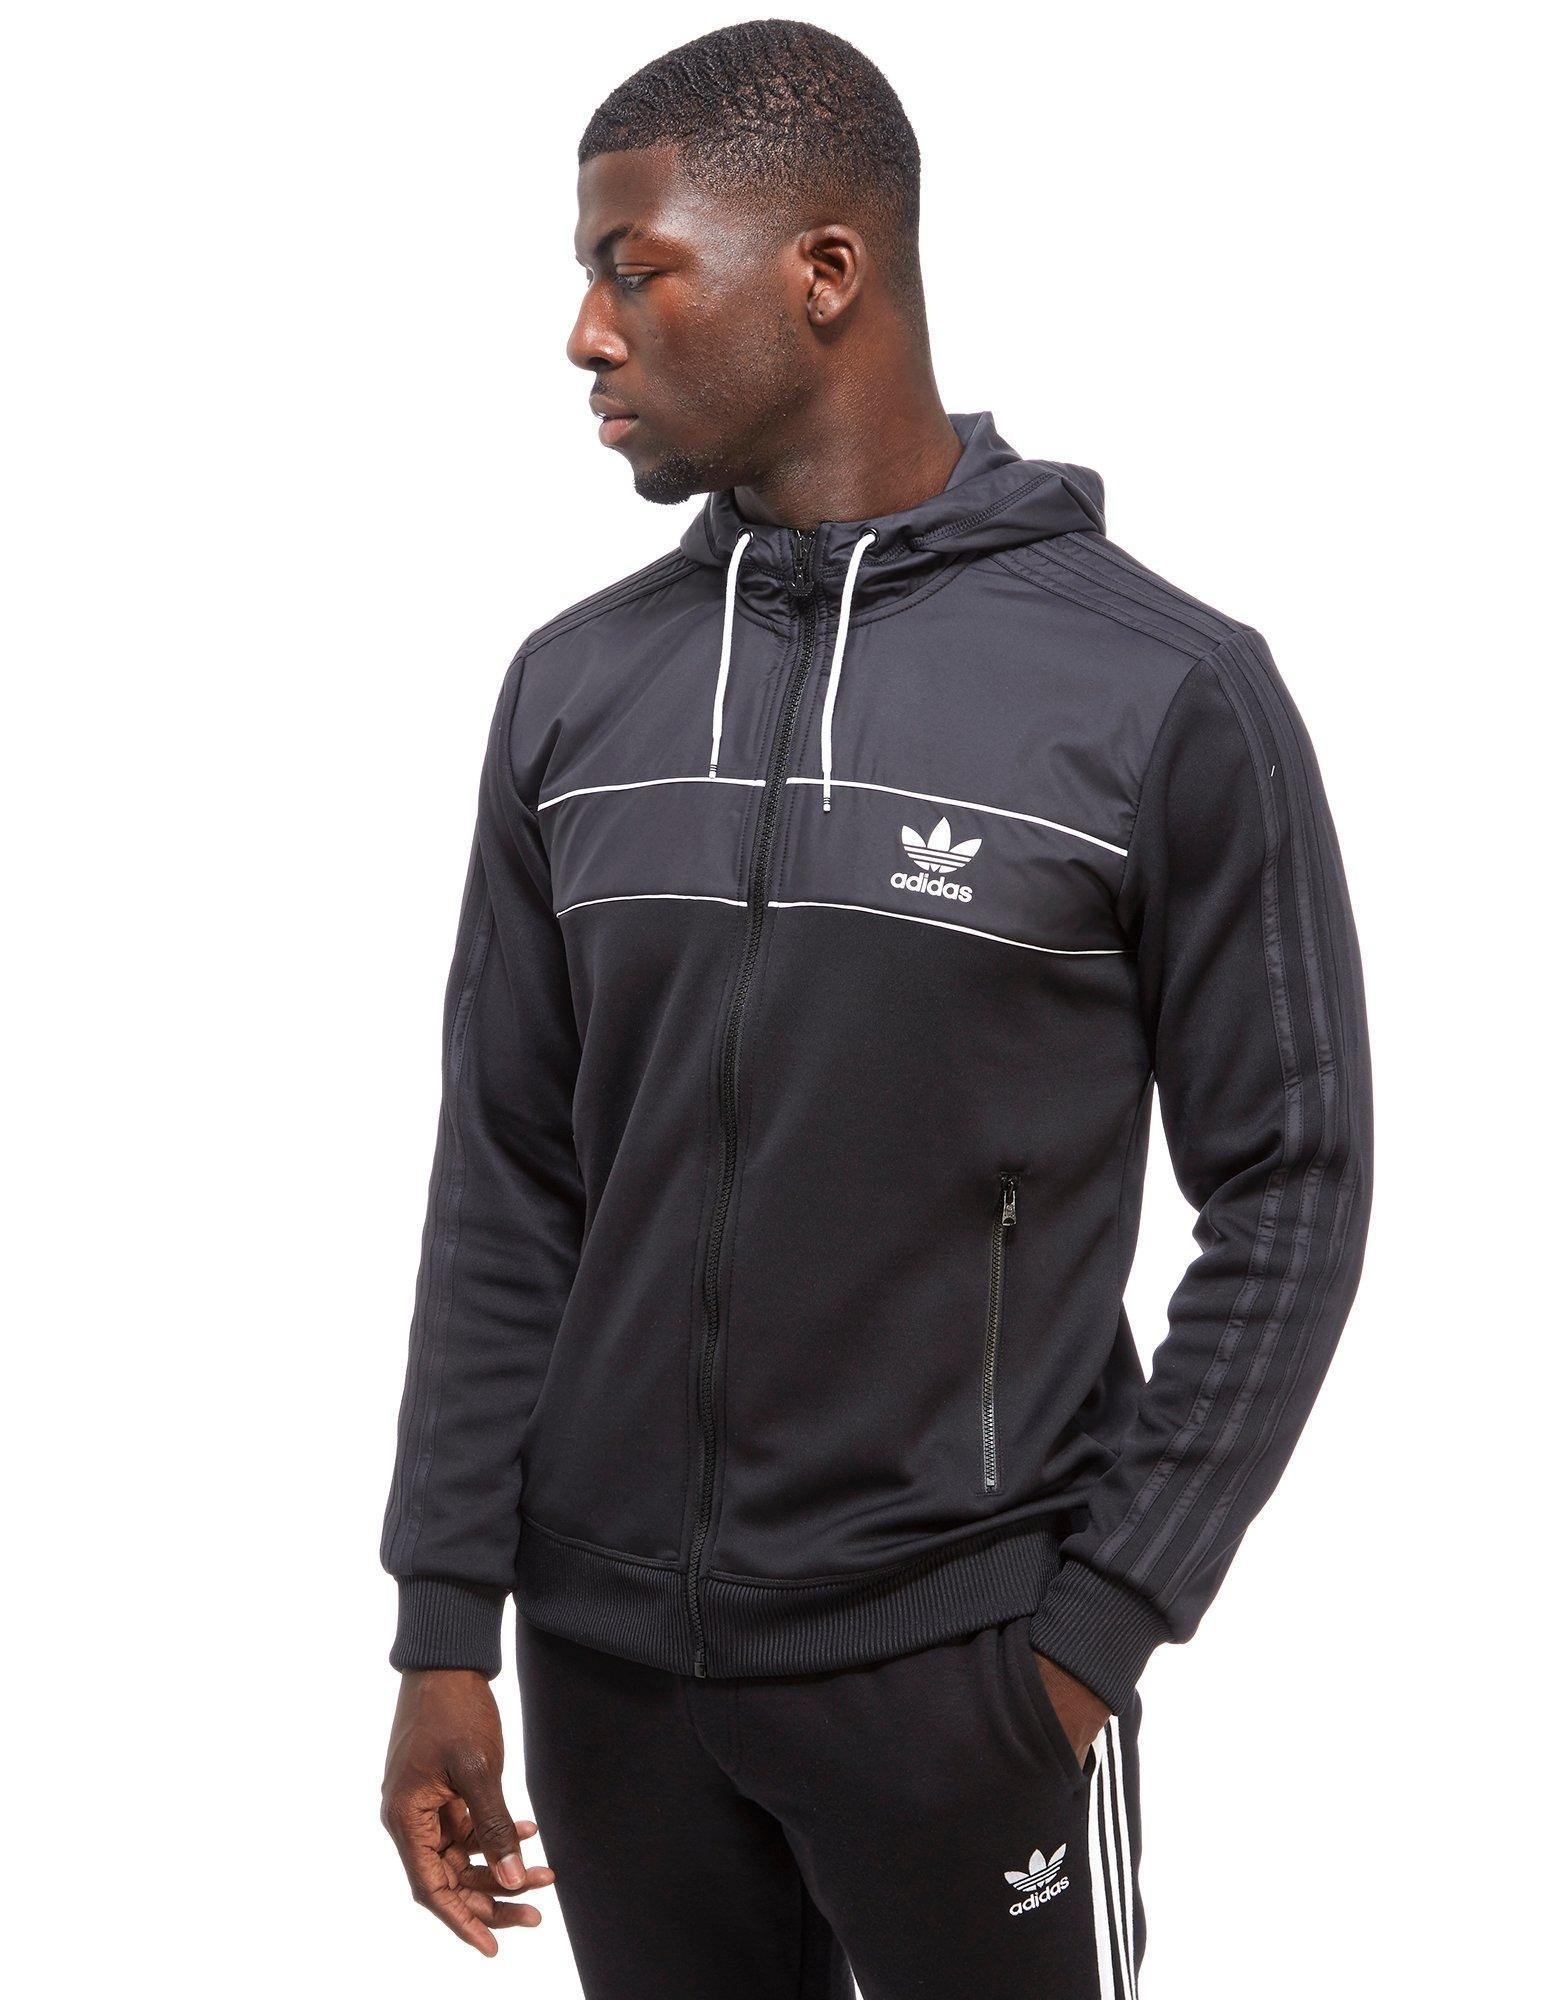 Adidas Originals Country Full Zip Hoody In Black For Men Lyst